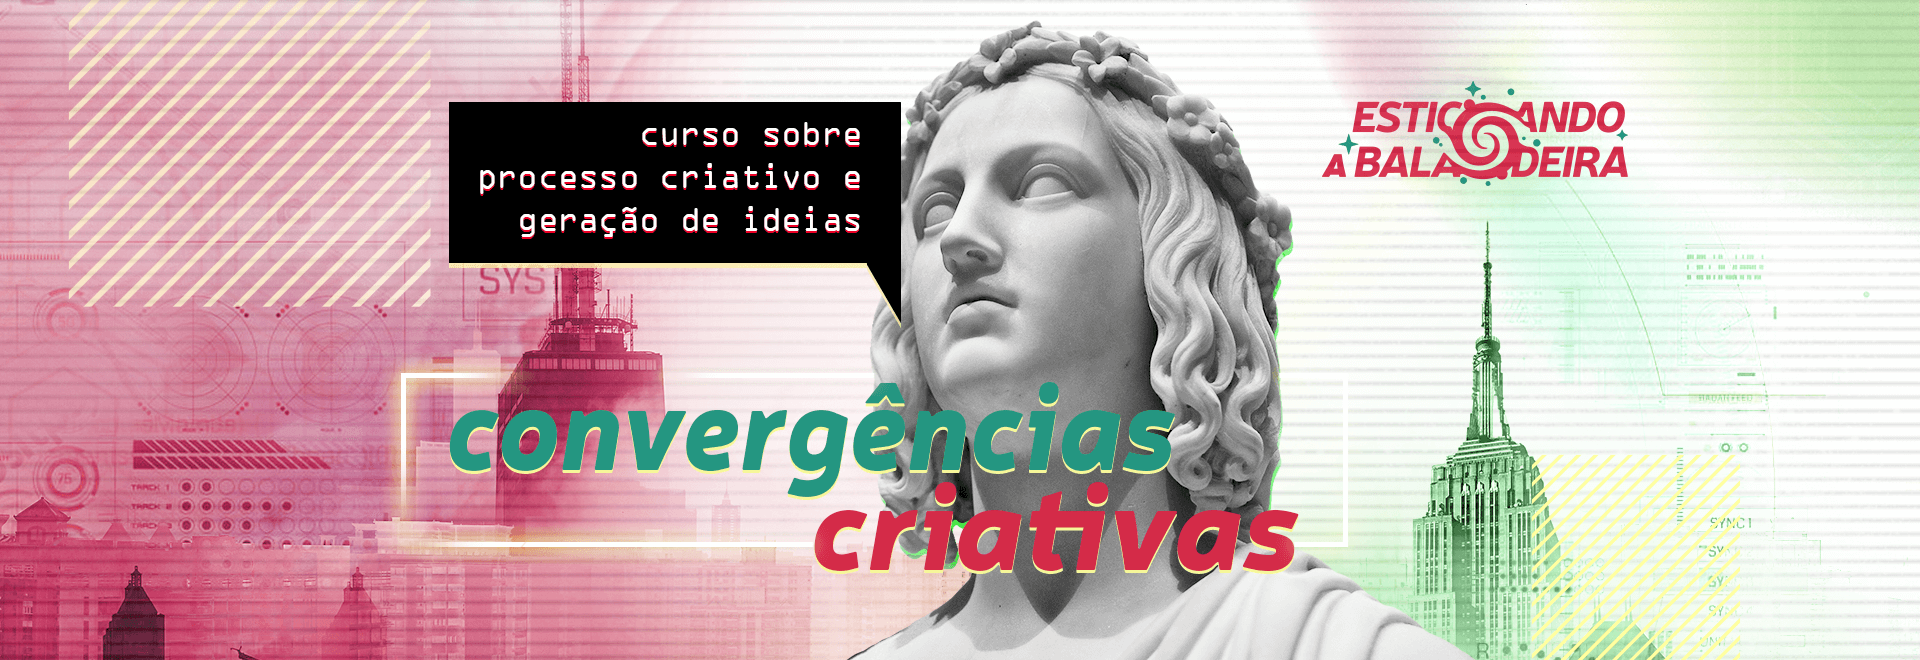 Header_LandPage_CursoConvergencias